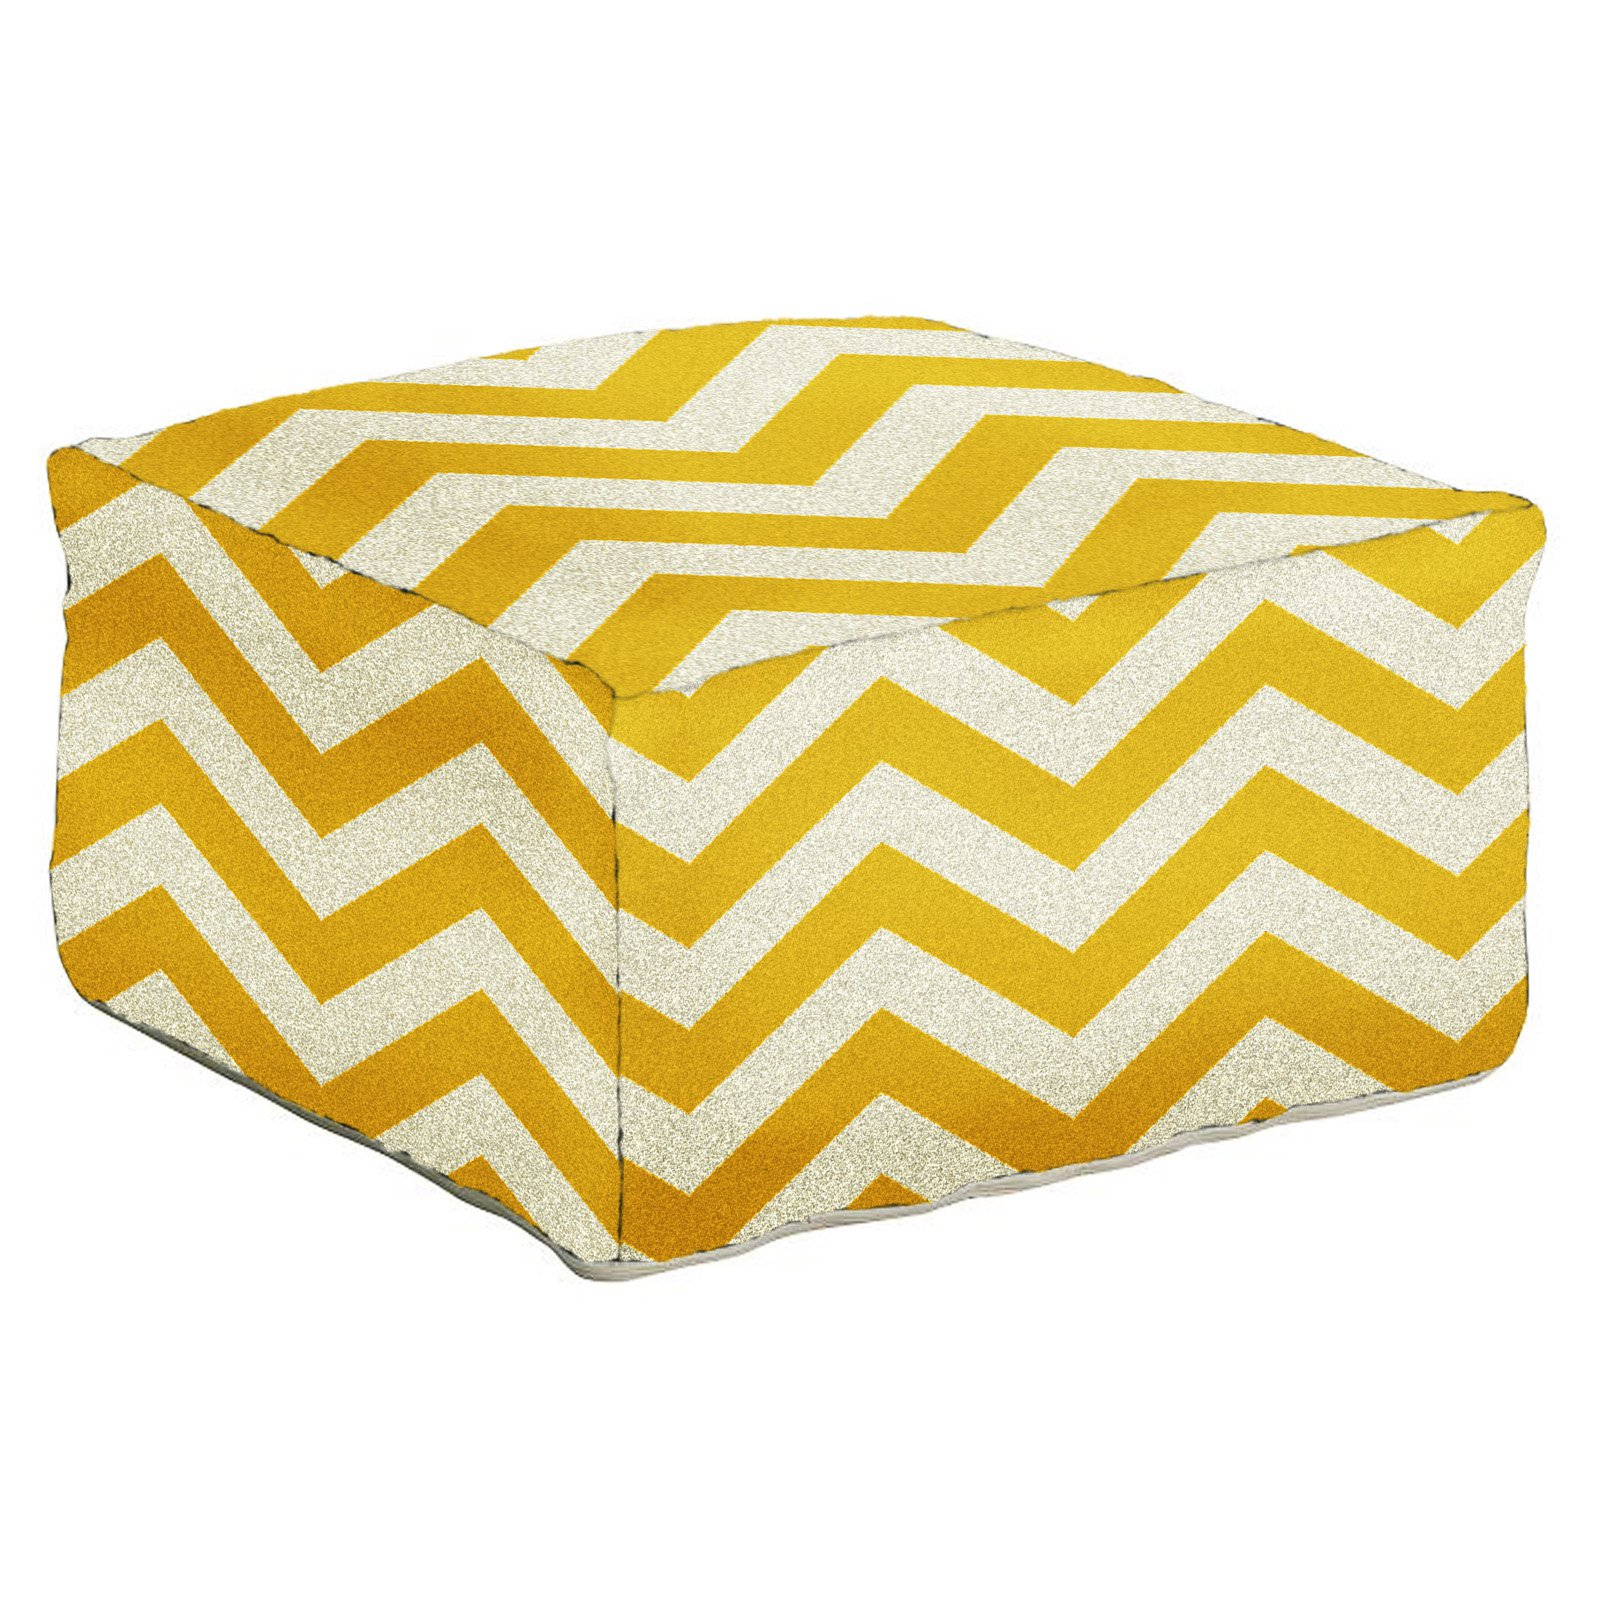 Surya 24 in. Zig-Zag Square Wool Pouf